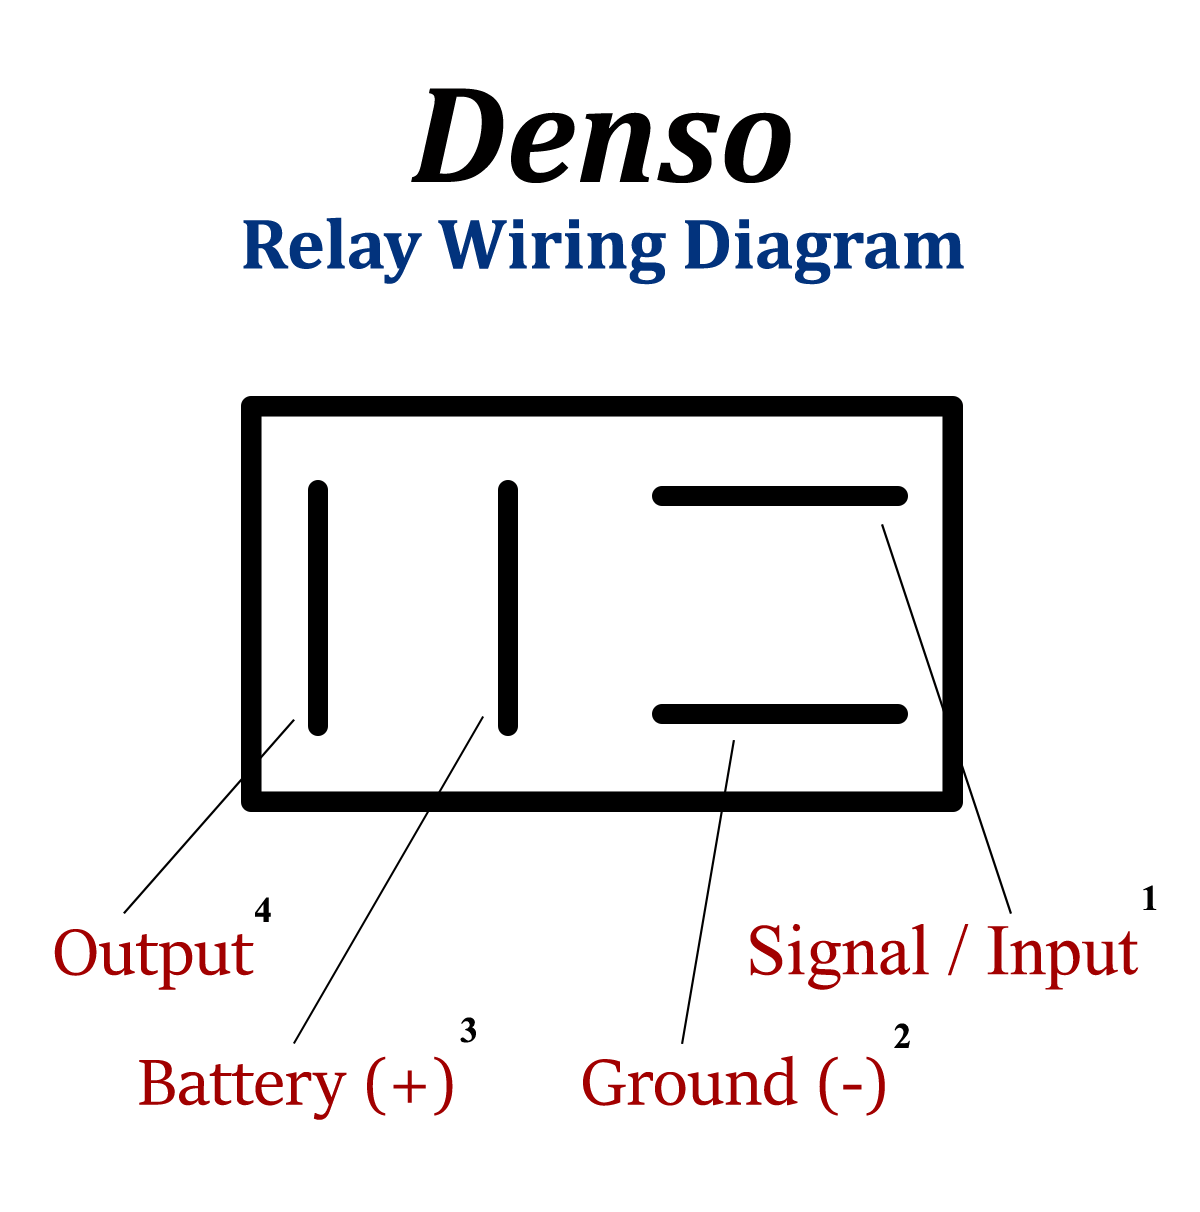 Denso Relay Wiring Diagram Benign Blog?resize\\\=297%2C300 wiring diagram for bello electric firep mod wiring wiring  at n-0.co